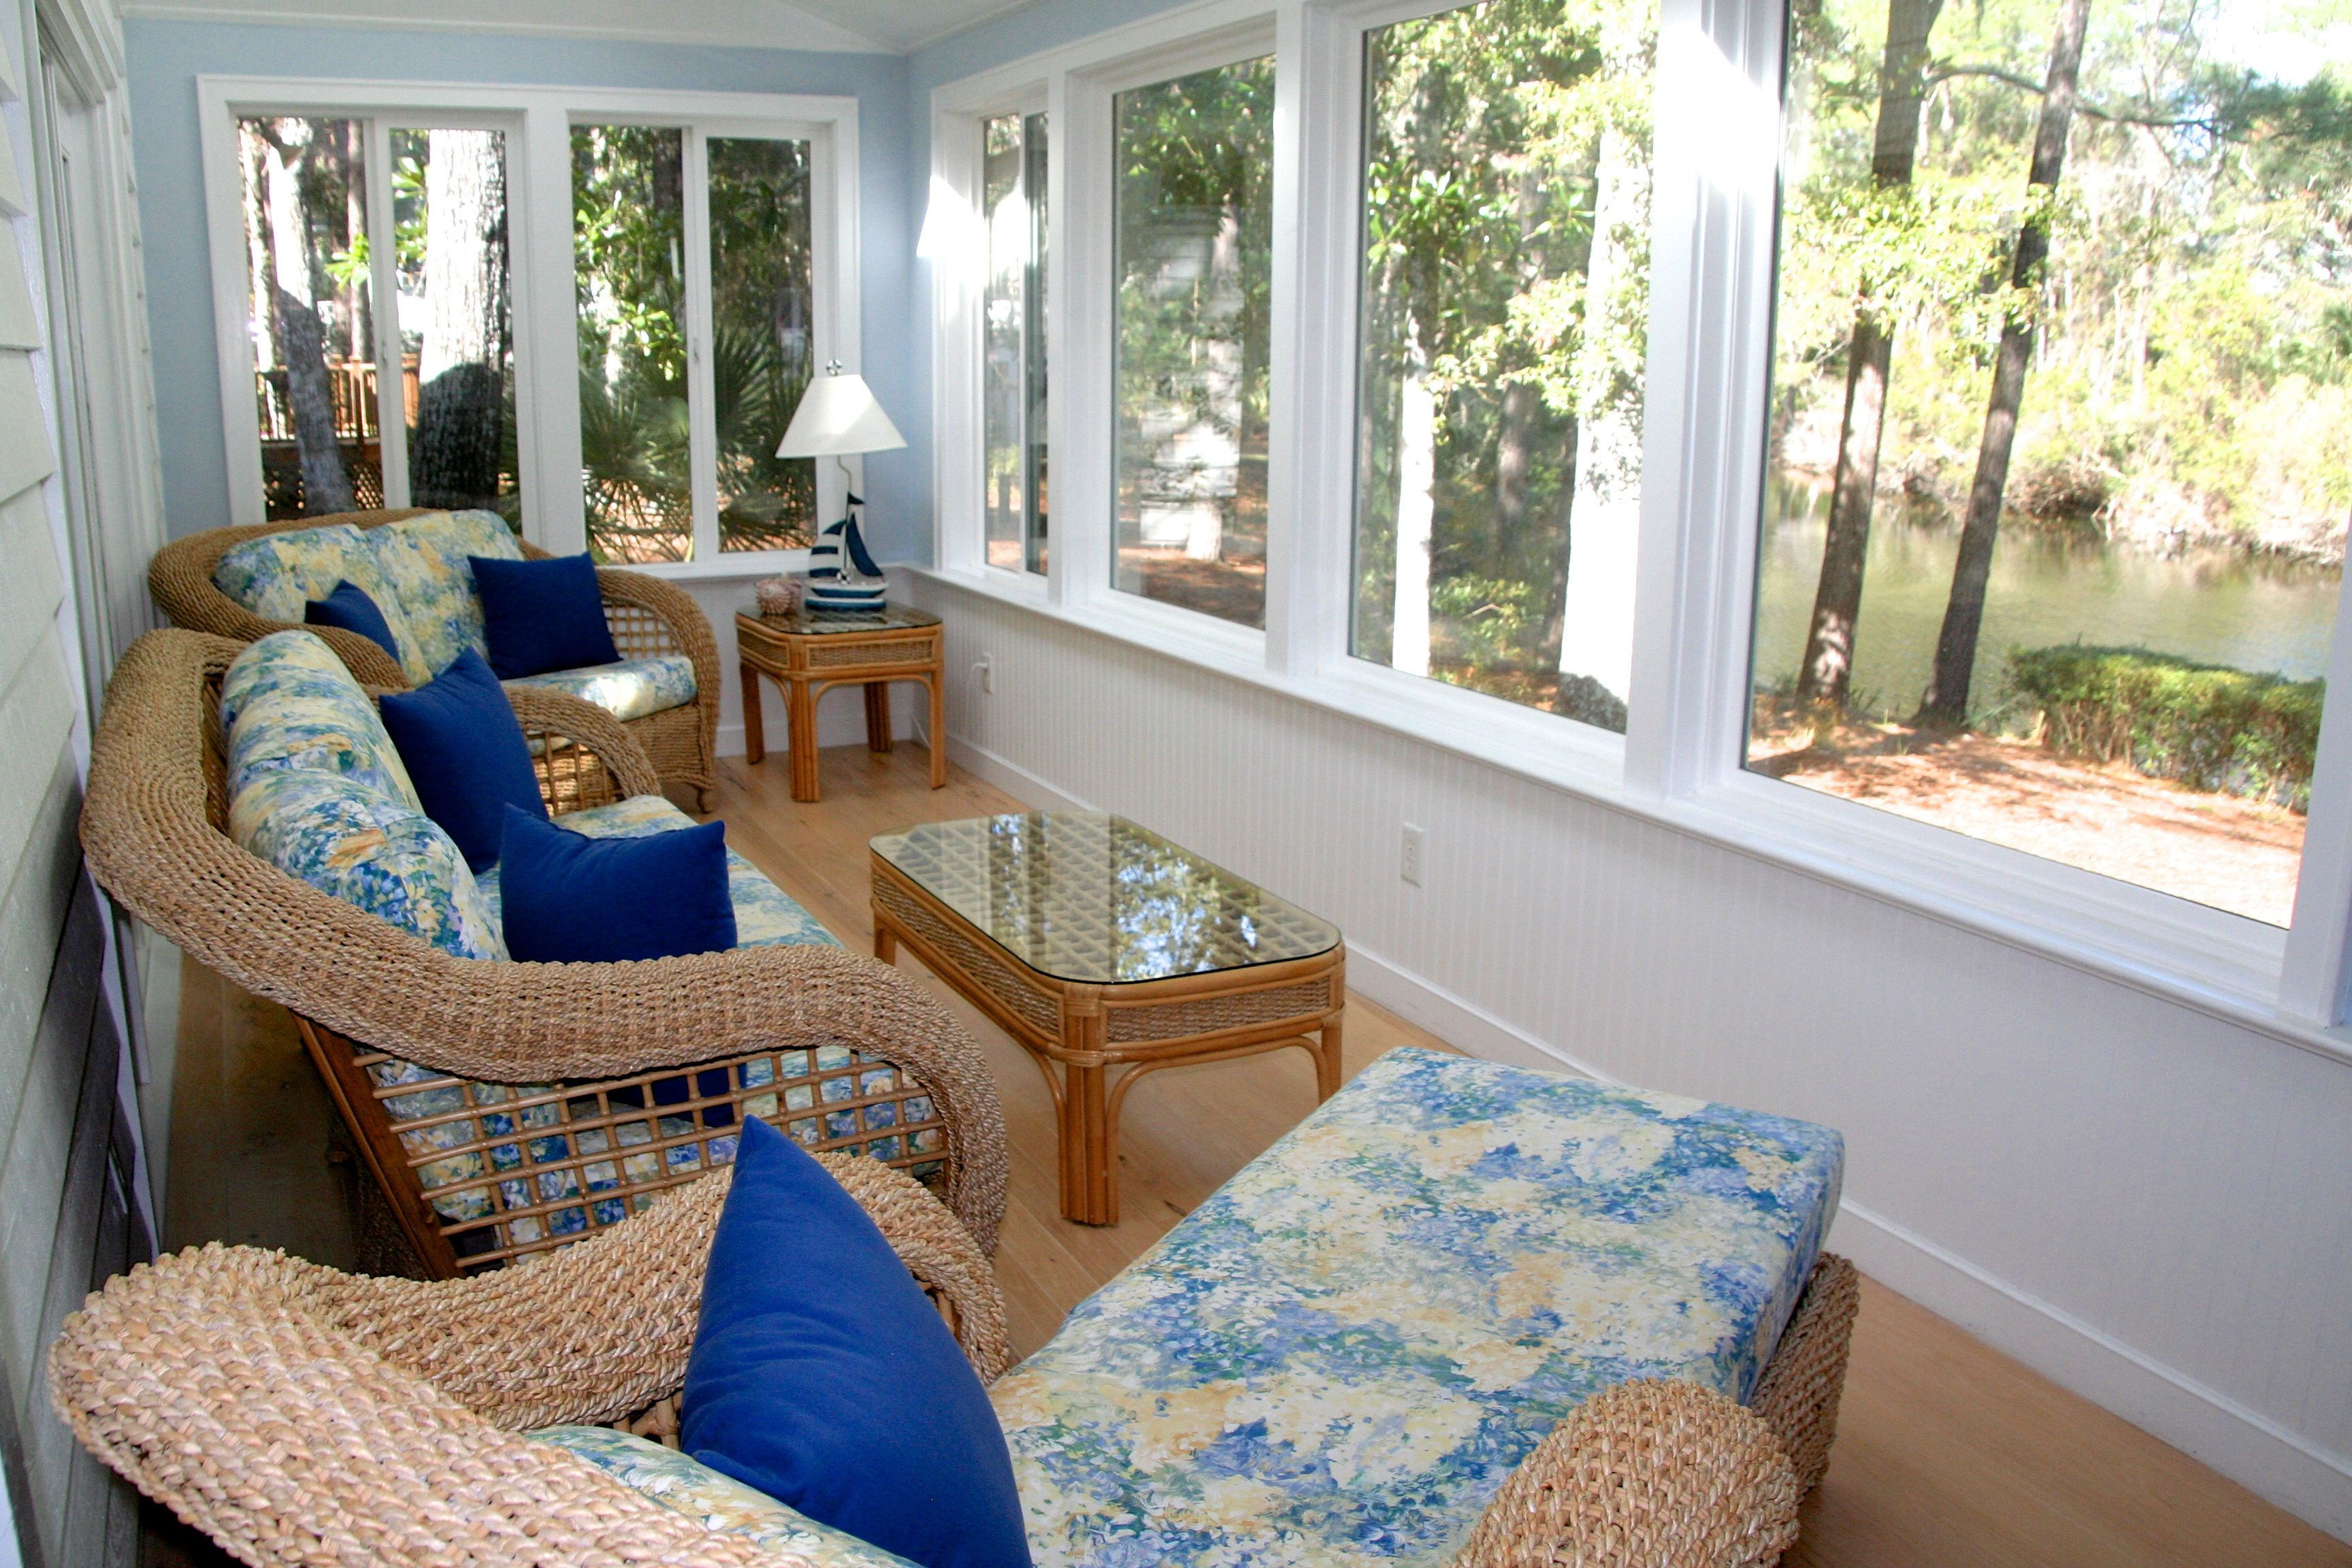 Sliding doors open into the amazing sunroom with panoramic views of a lagoon.